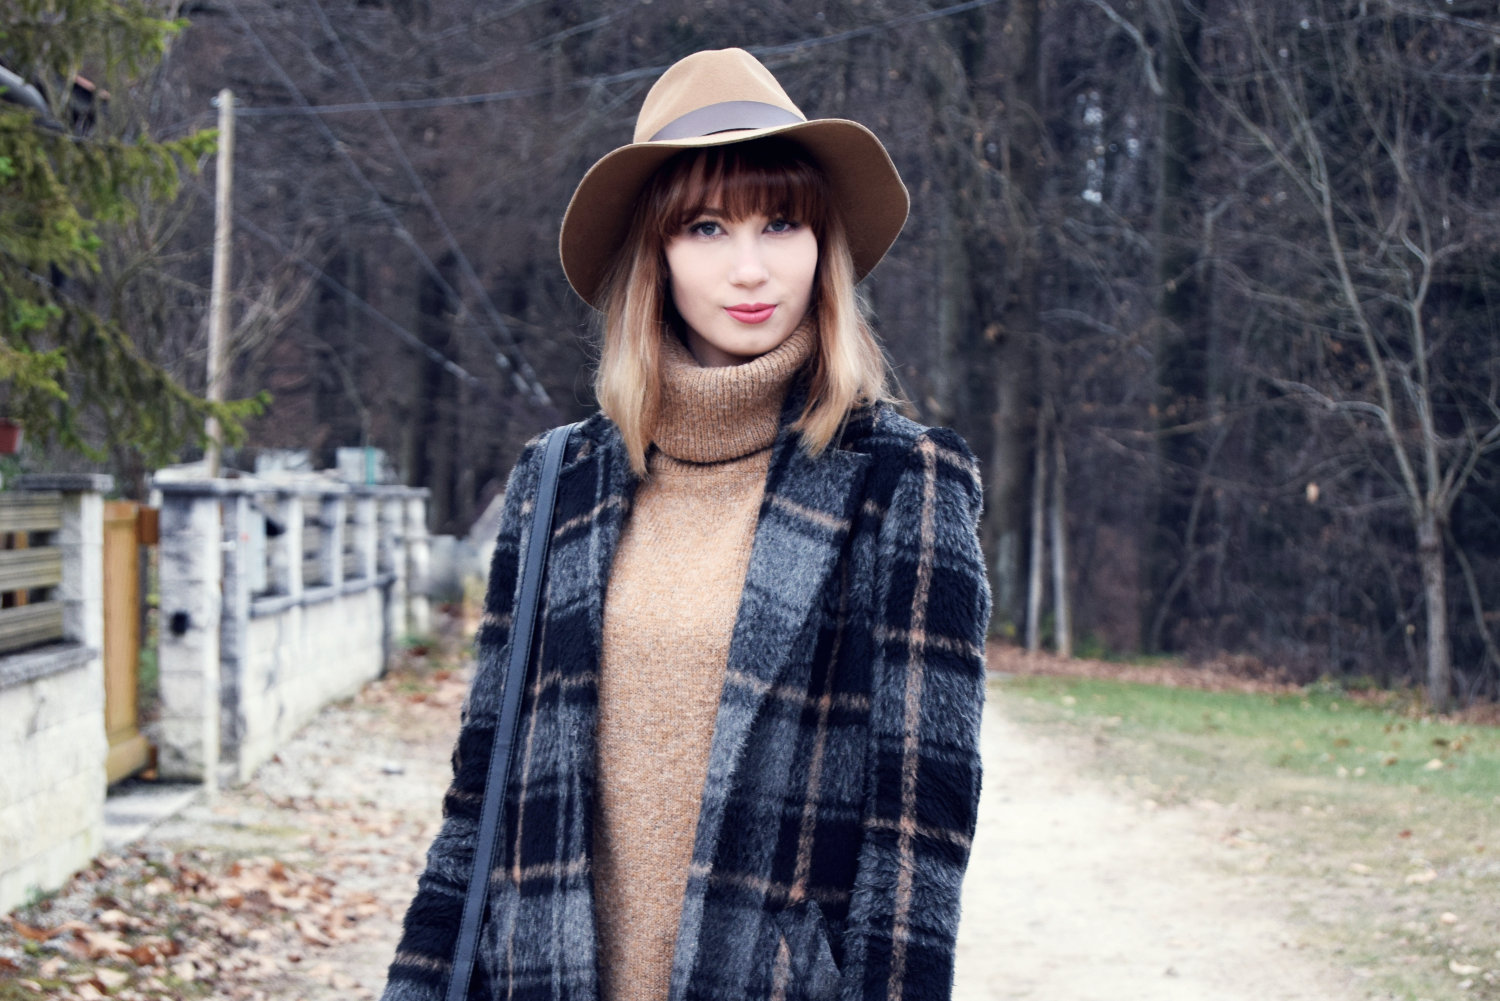 zalabell_fashion_december_winter_style_4